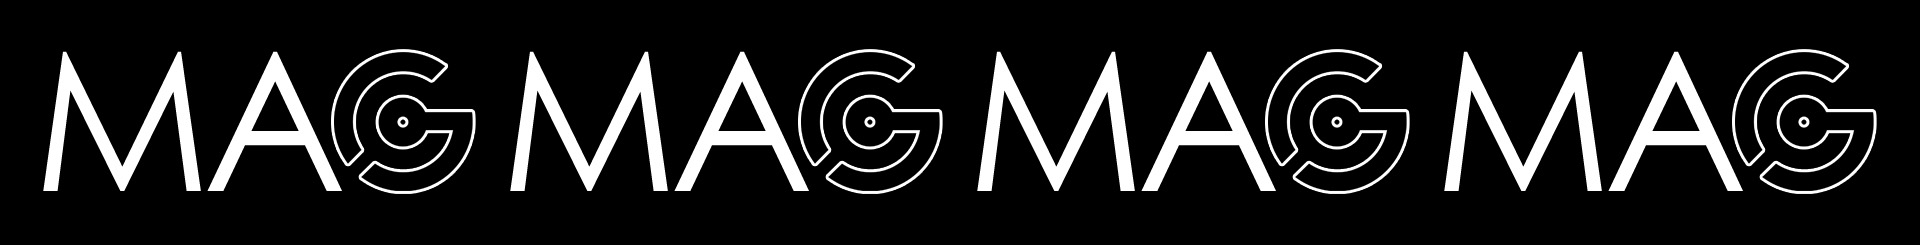 Mag-GMT